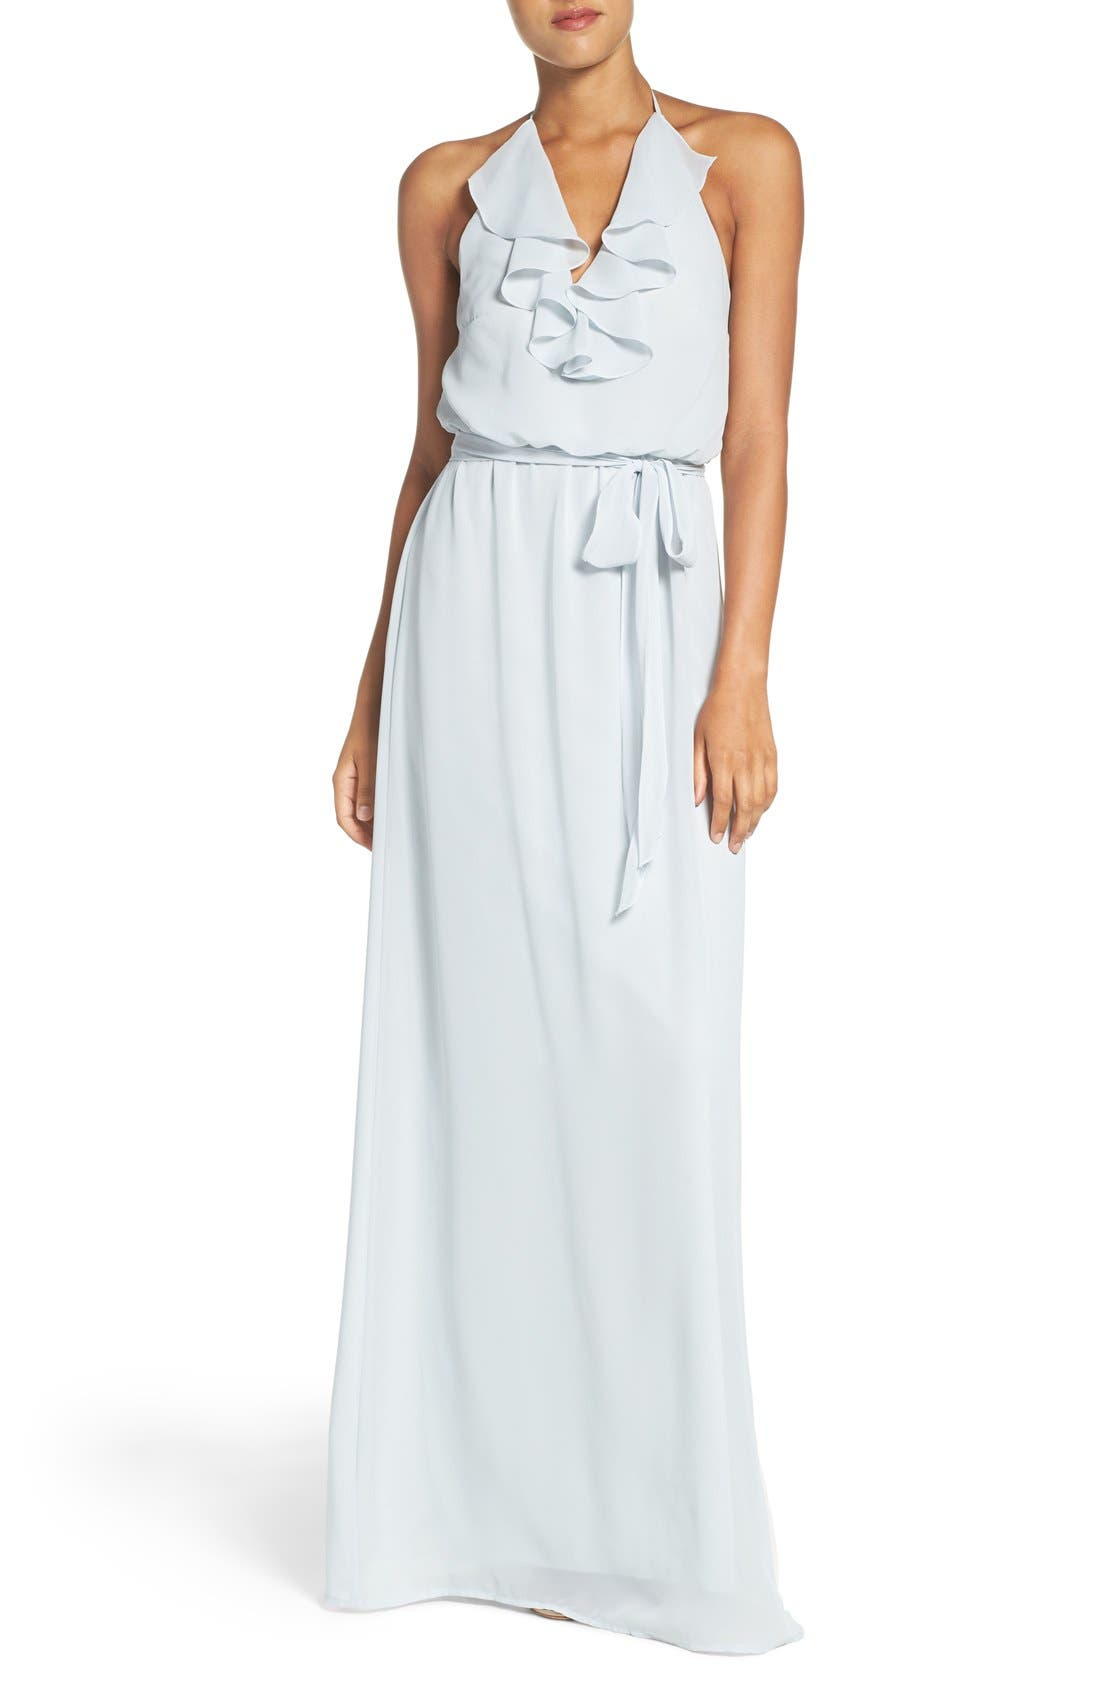 Alternate Image 1 Selected - nouvelle AMSALE 'Dani' Ruffle Neck V-Neck Halter Gown